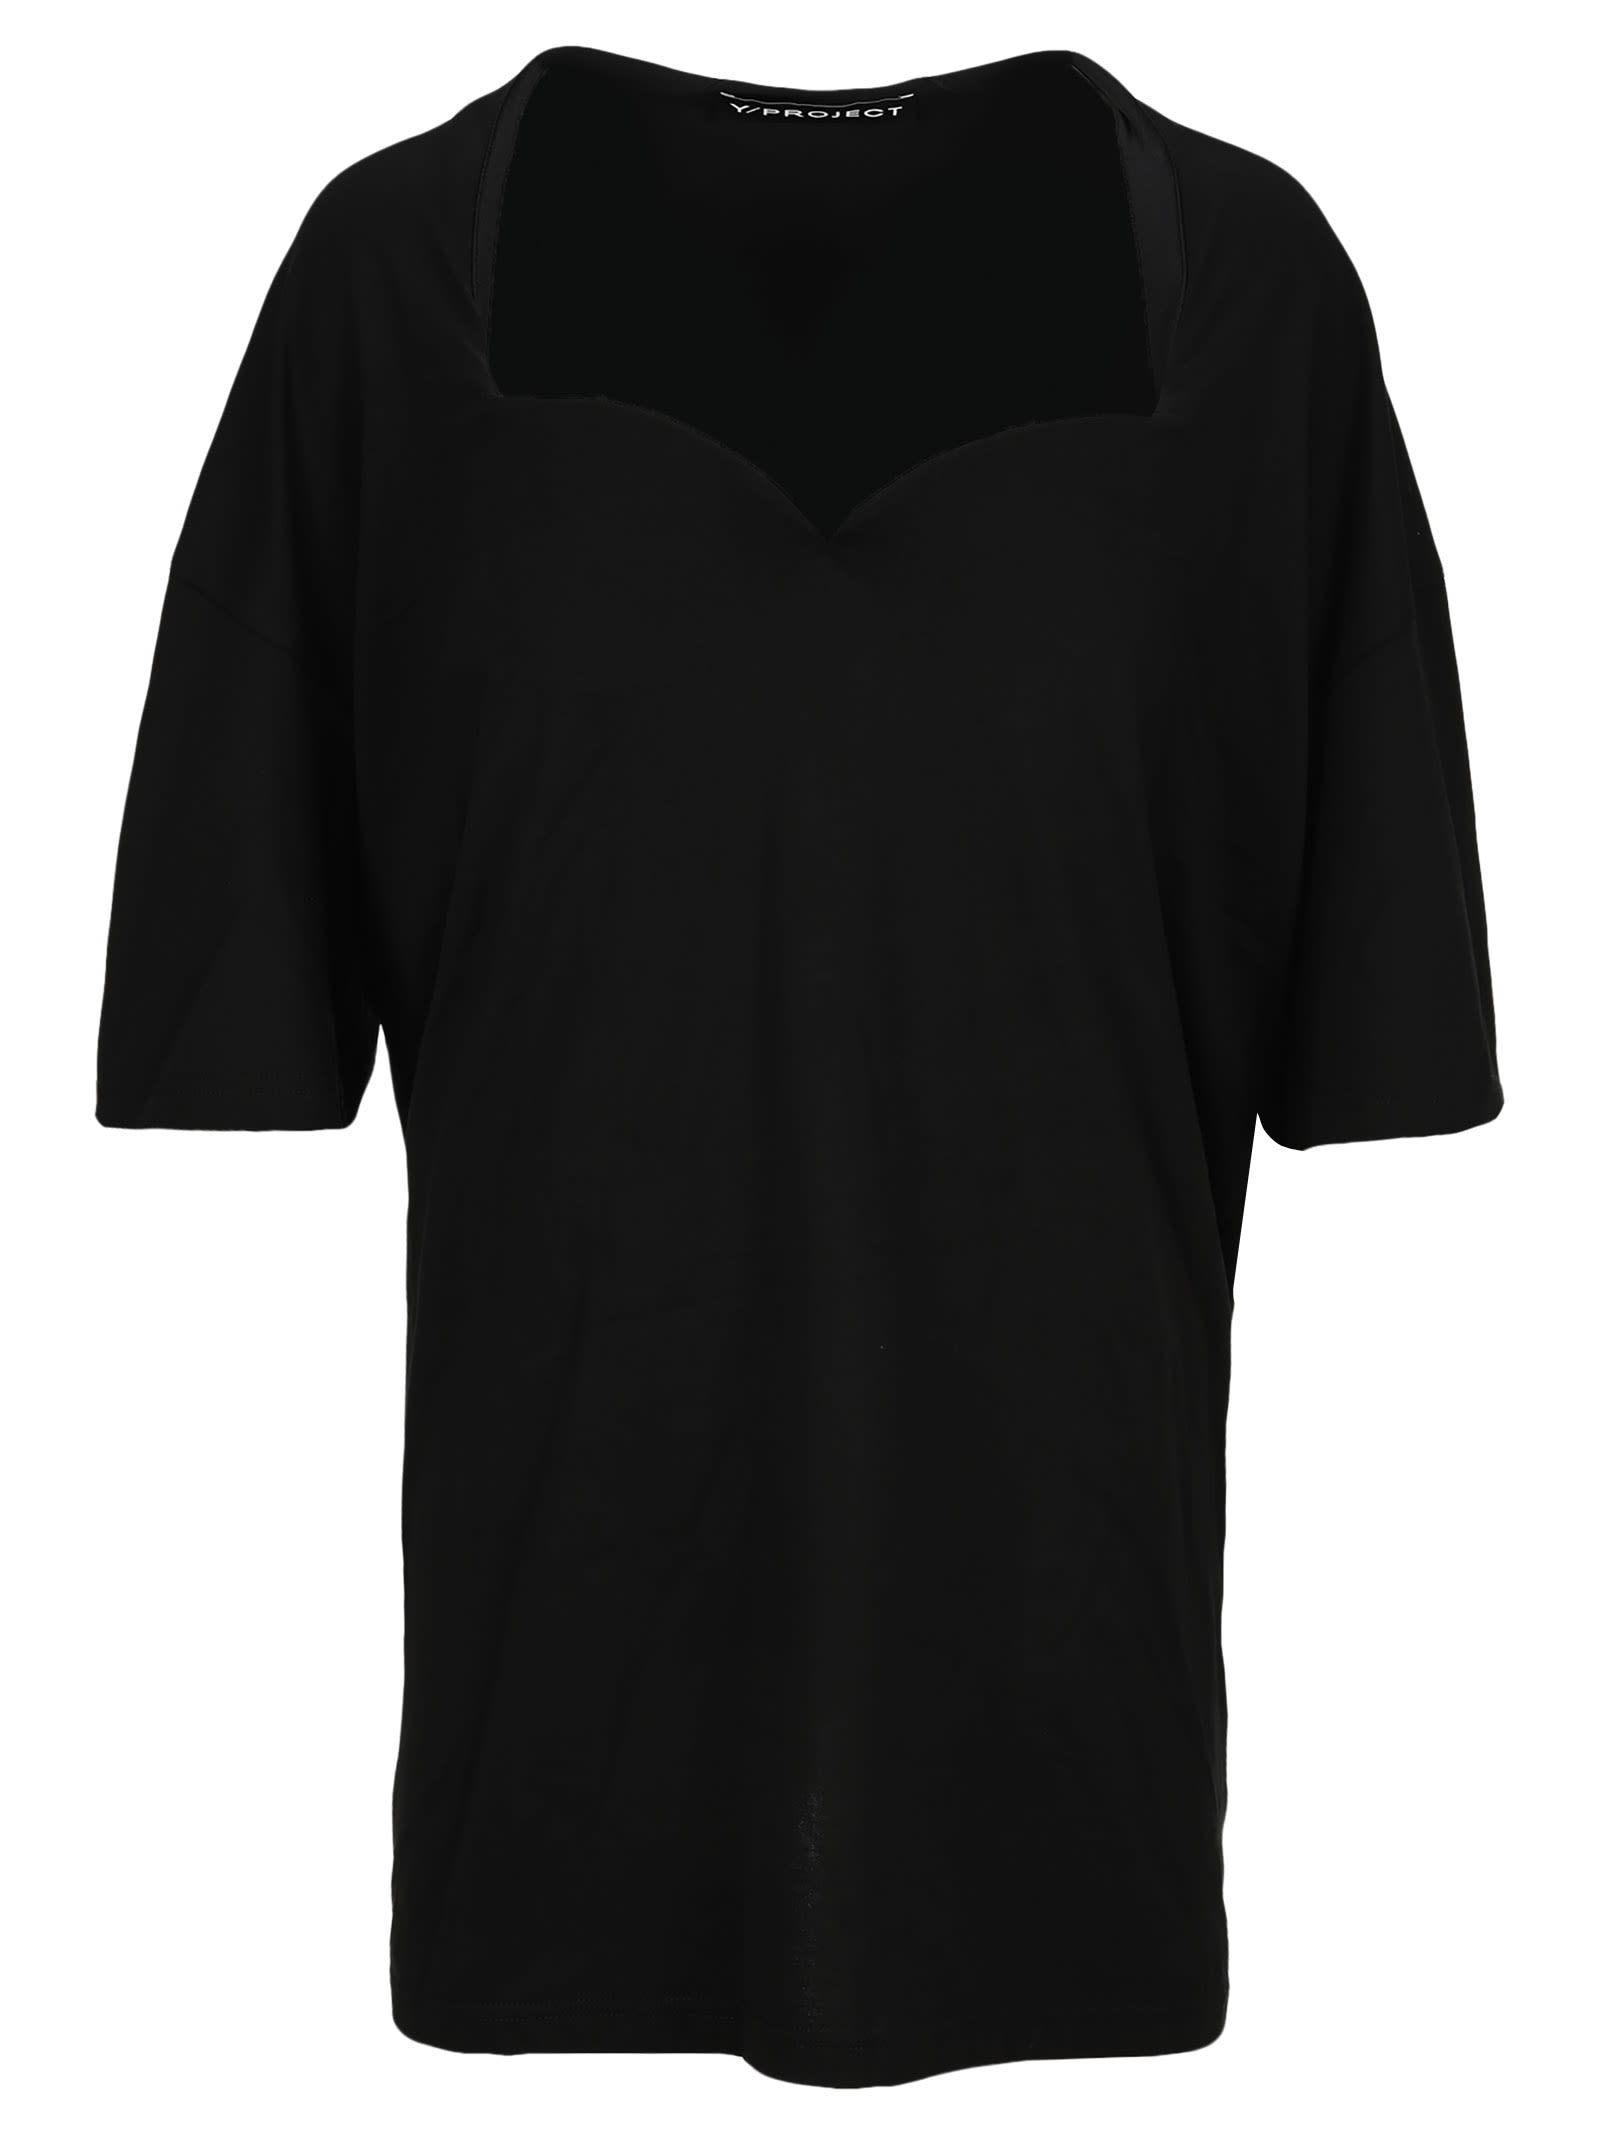 Y/project Y/PROJECT PUSH UP T-SHIRT